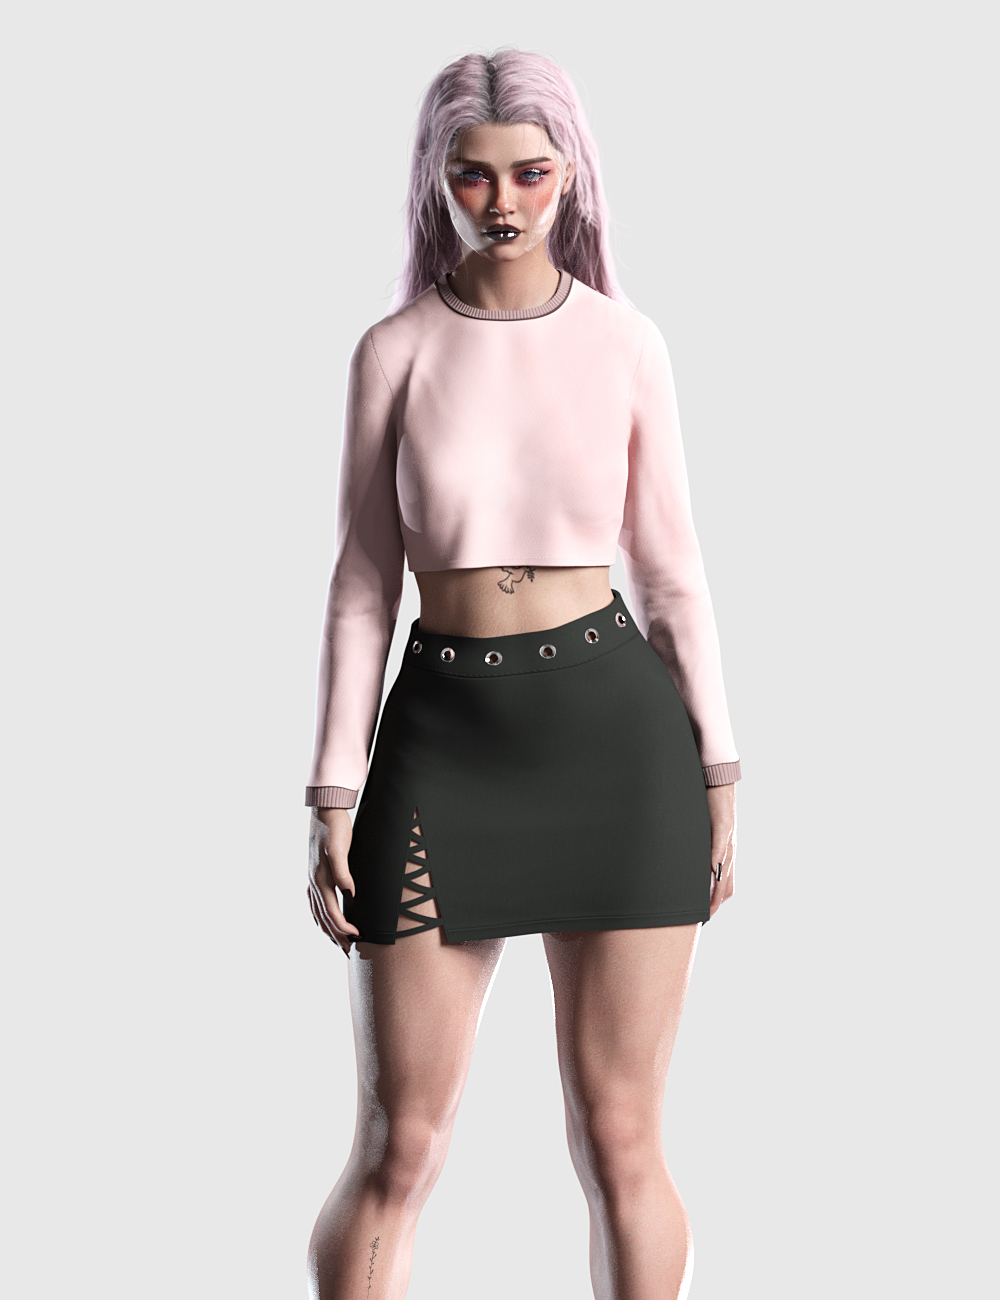 DFORCE CASUAL CROP OUTFIT FOR GENESIS 8 FEMALES